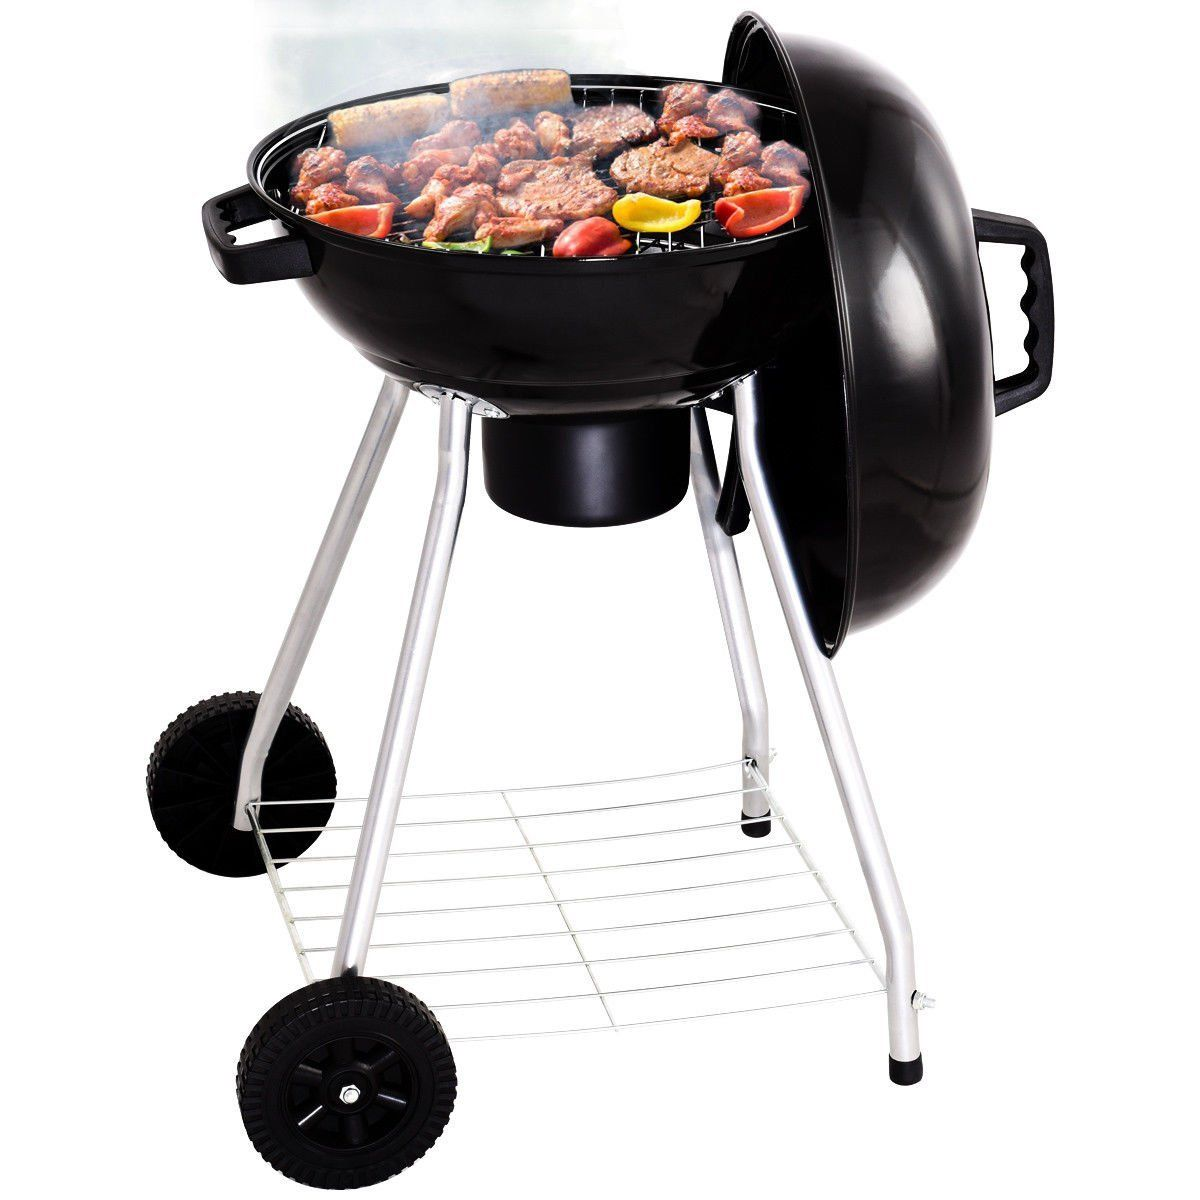 Best Charcoal Grill 2021 Pin on Best Gas Grills 2019